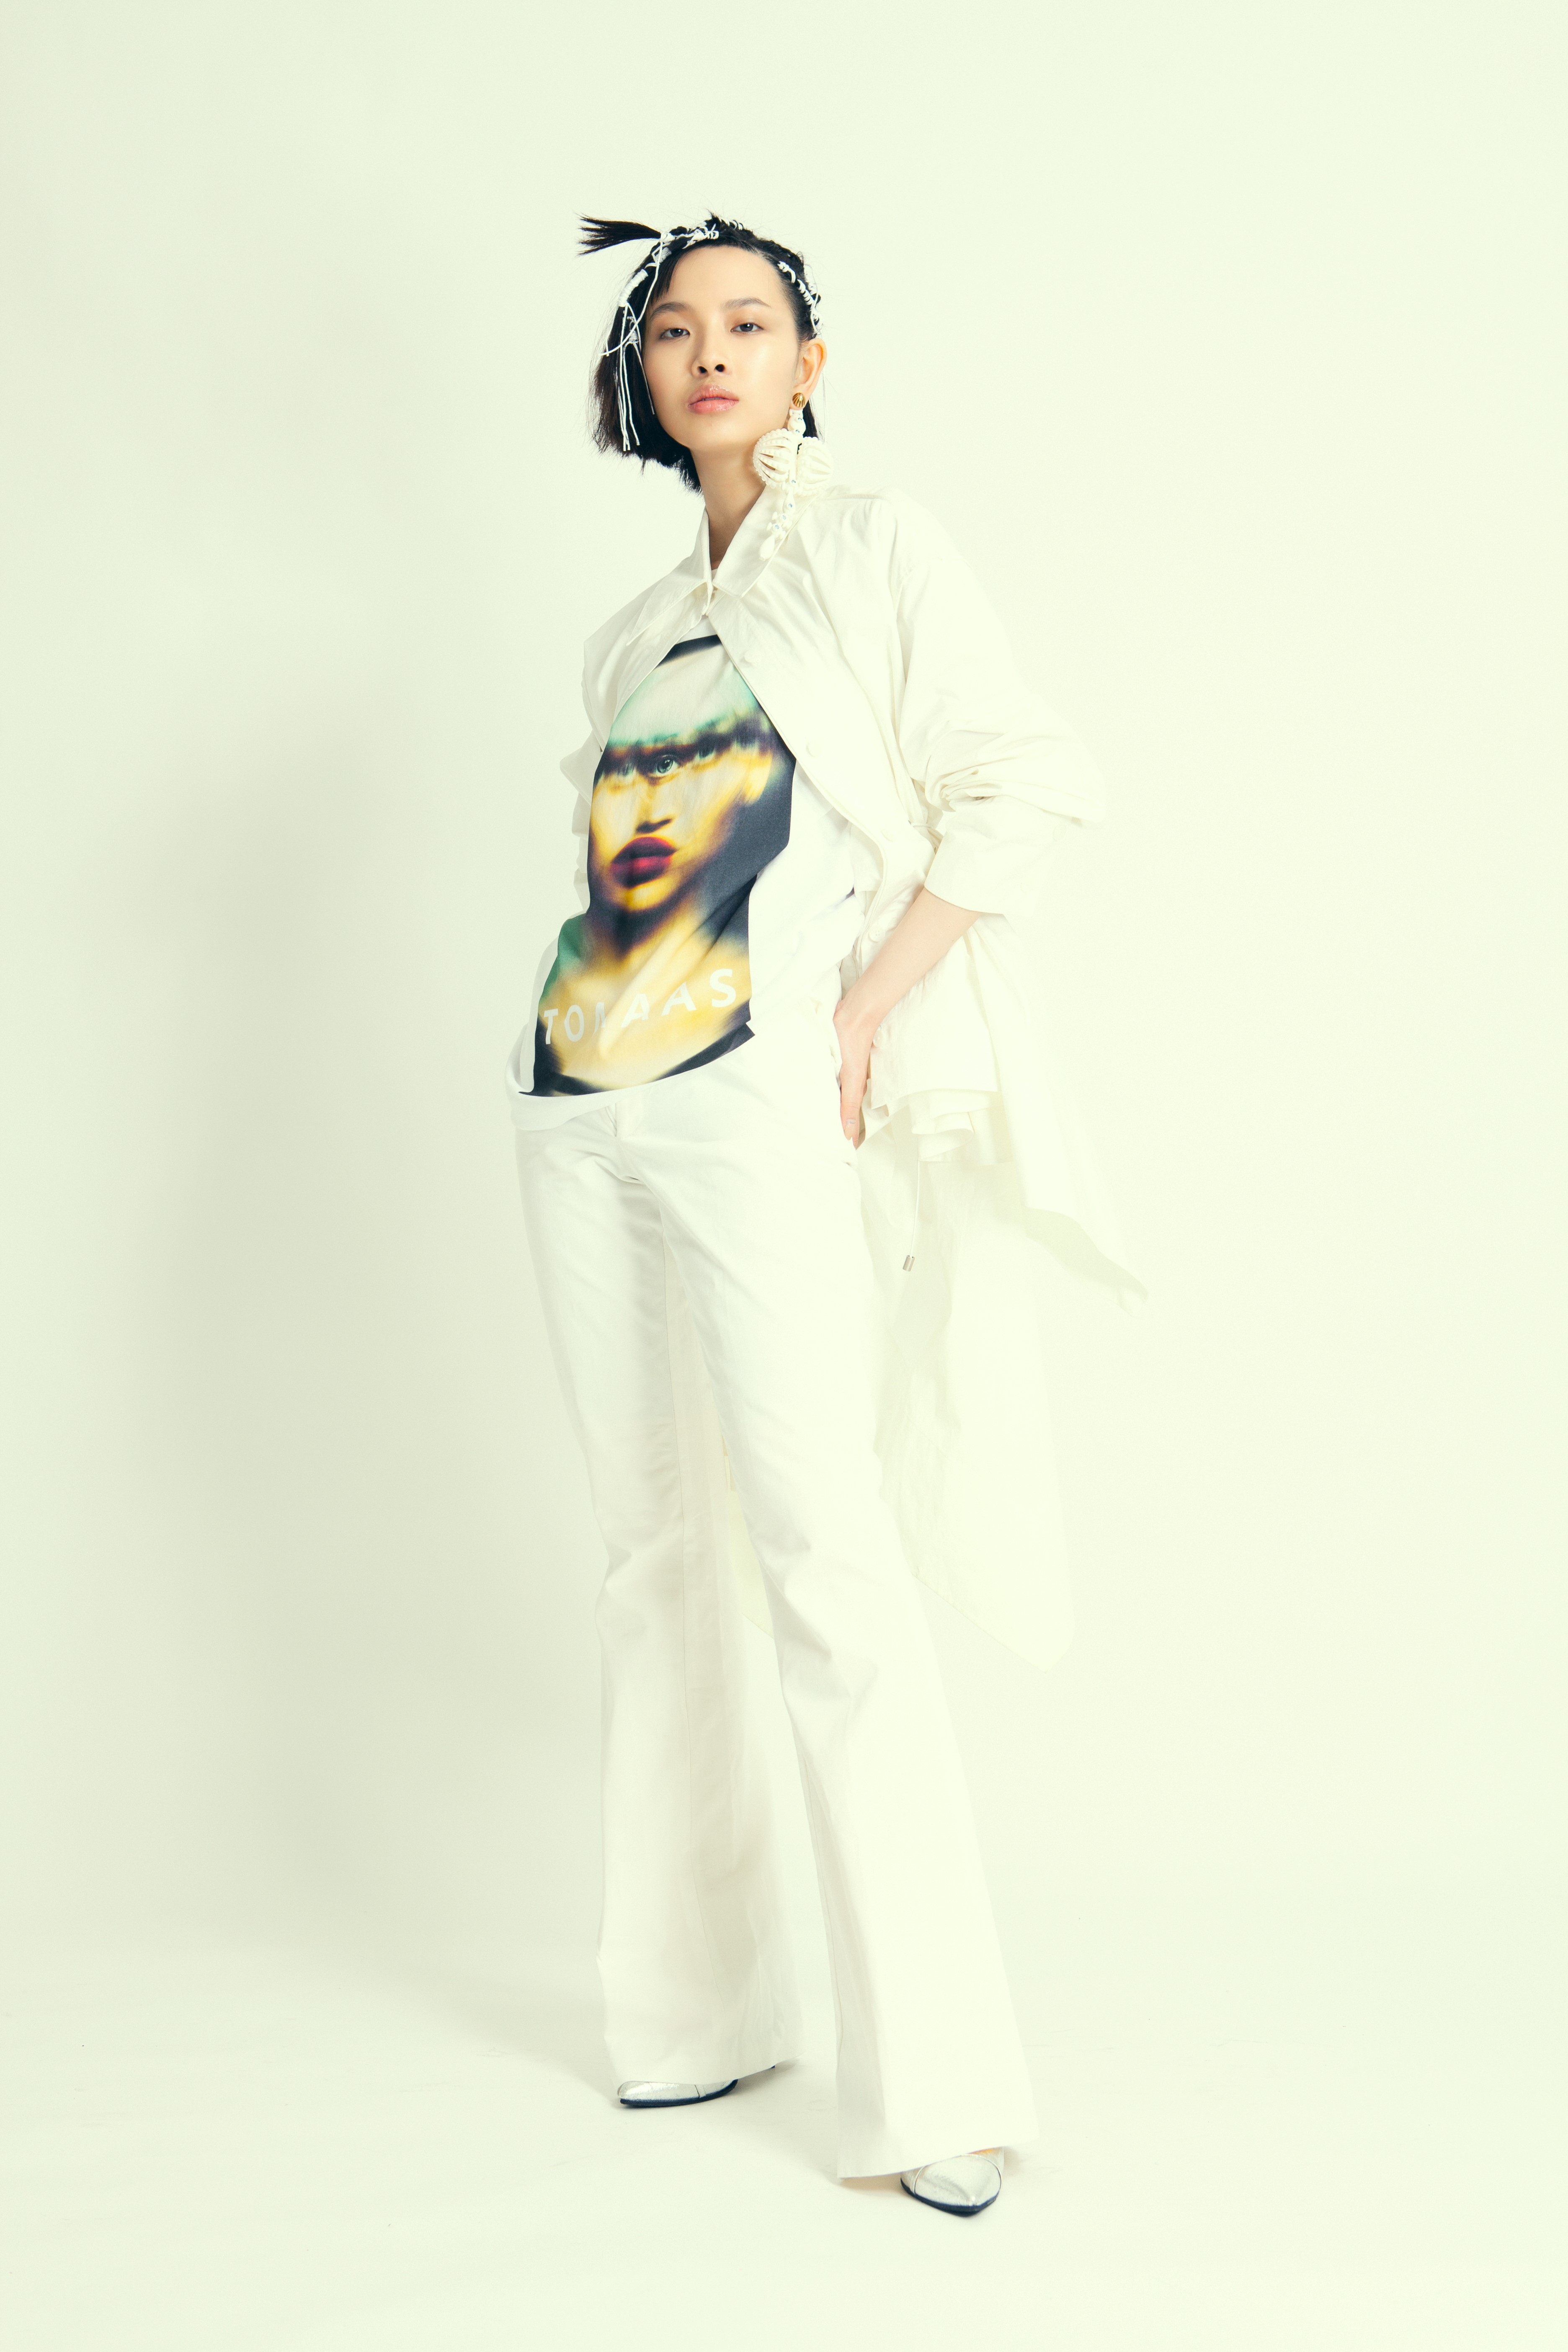 T-shirt : Tomaas White flare pants : Louise Marcaud White long shirt : Besfxxk  Silver pumps : Soulyé Sapphire droplet earring : Diana Law